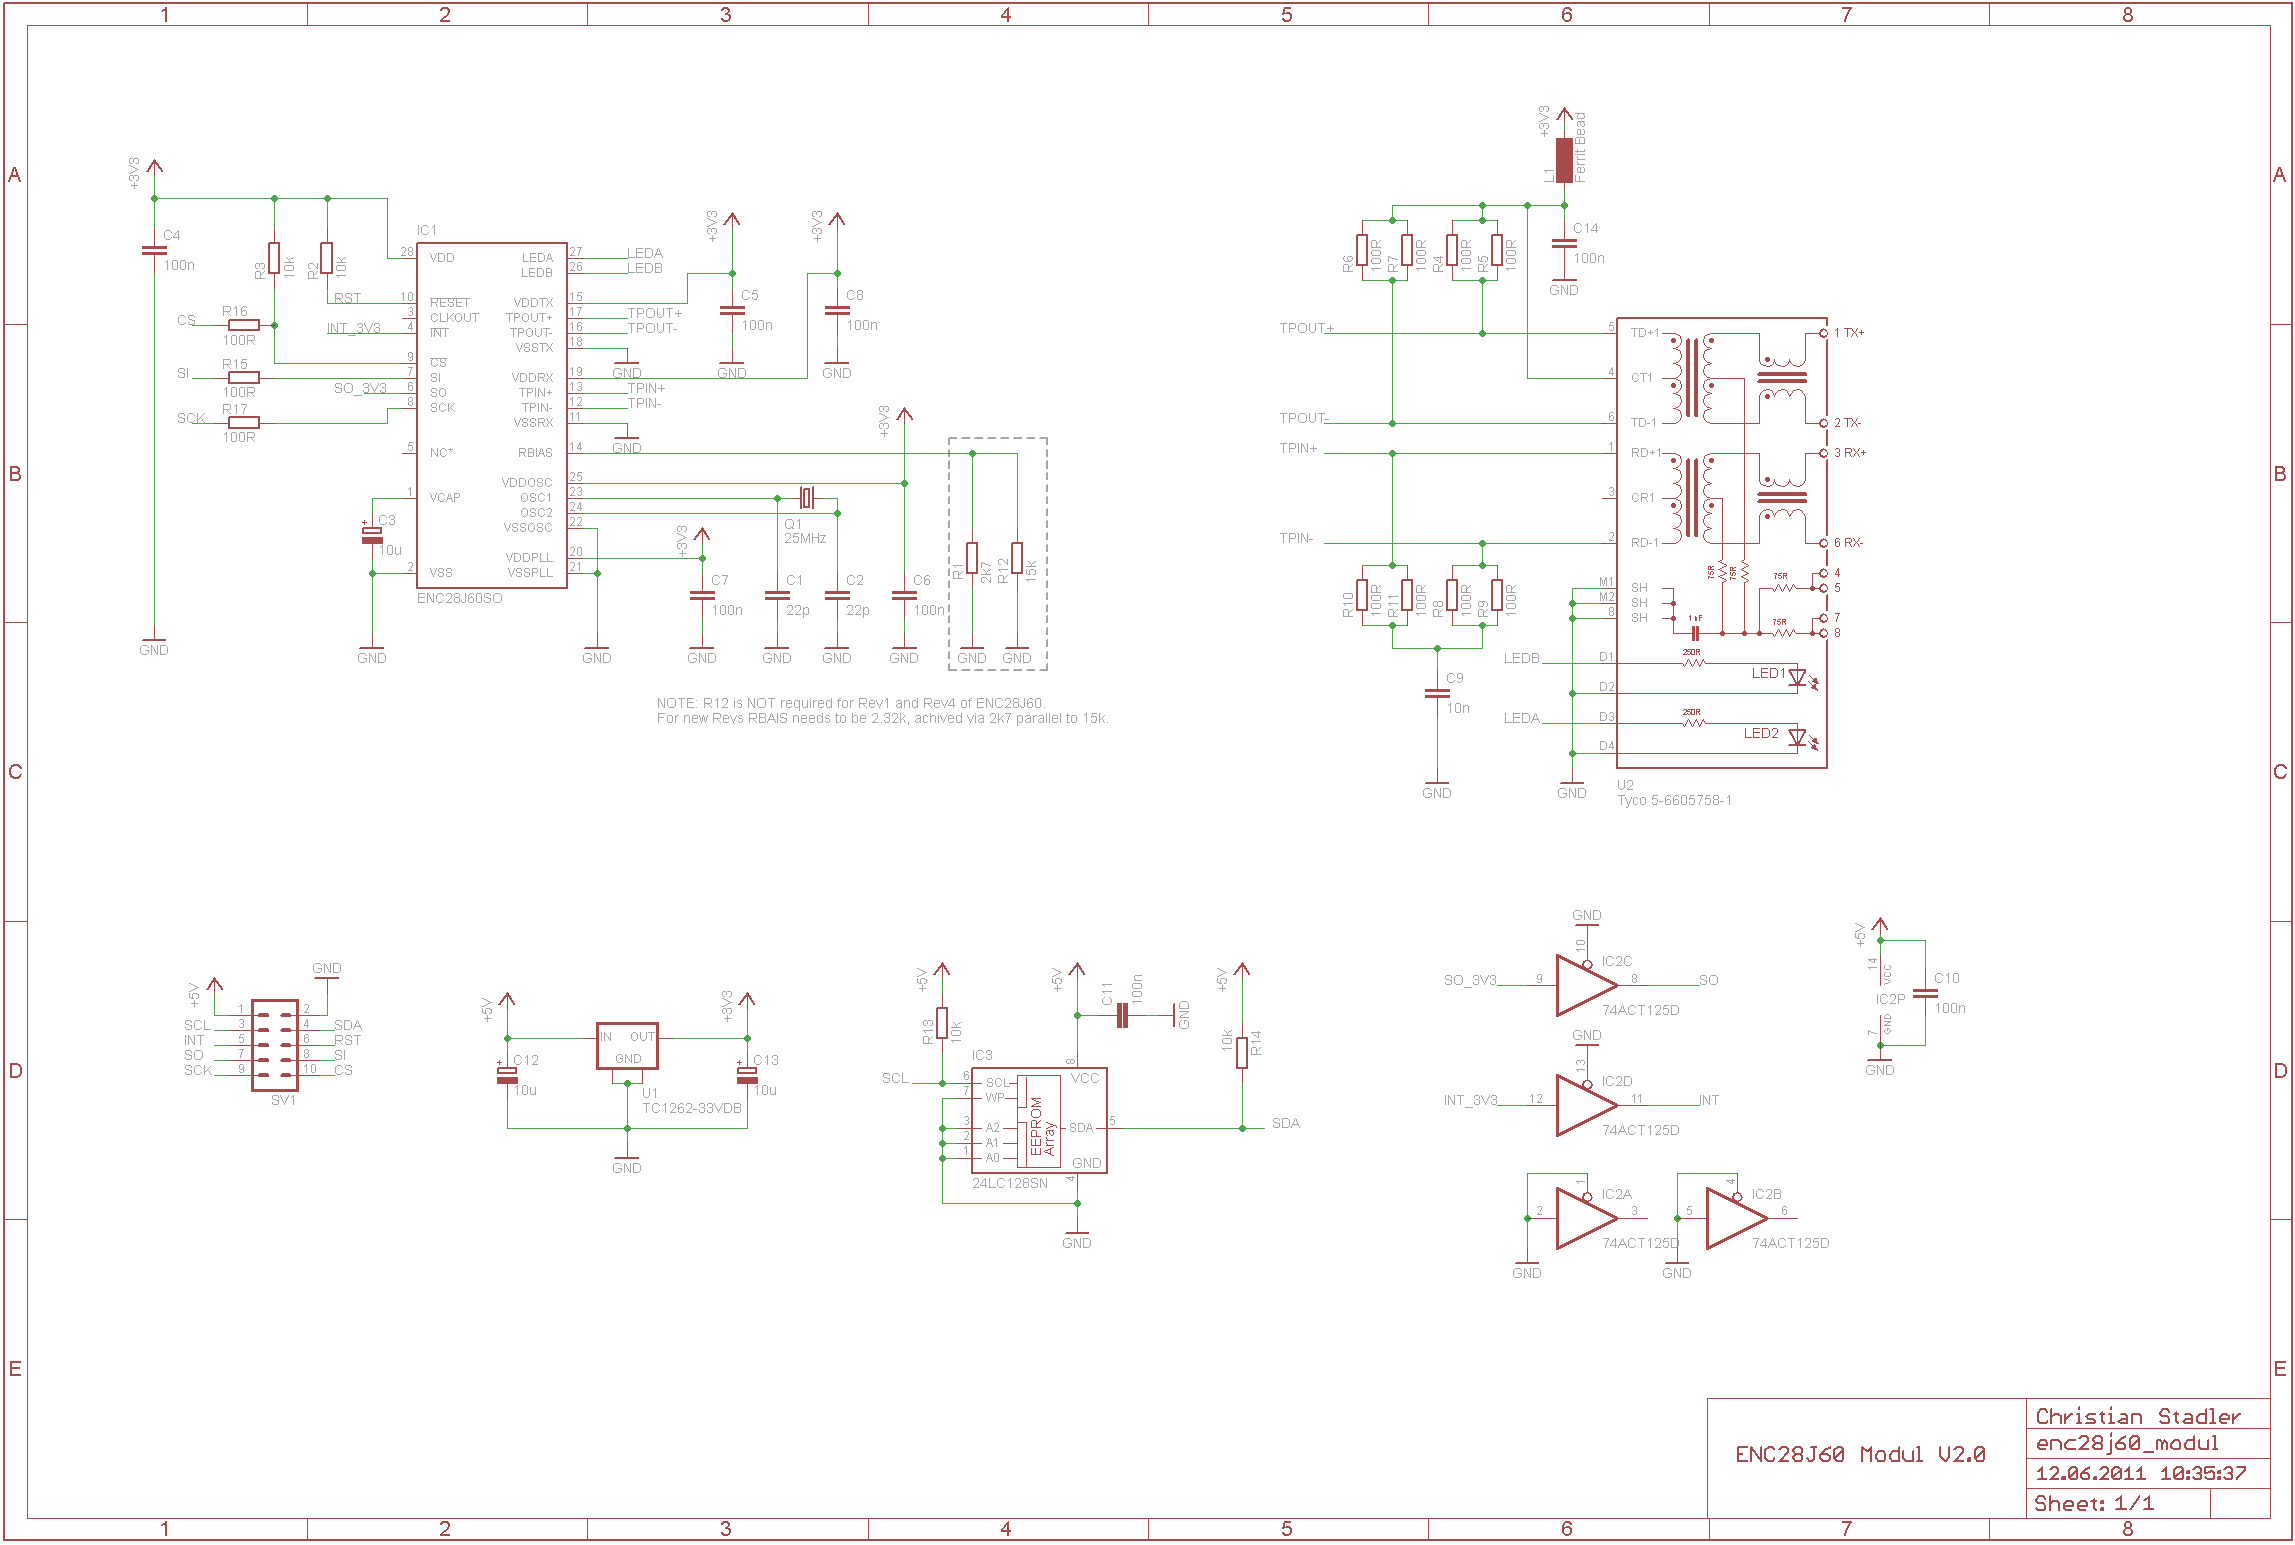 3 3v power supply schematic  3  free engine image for user